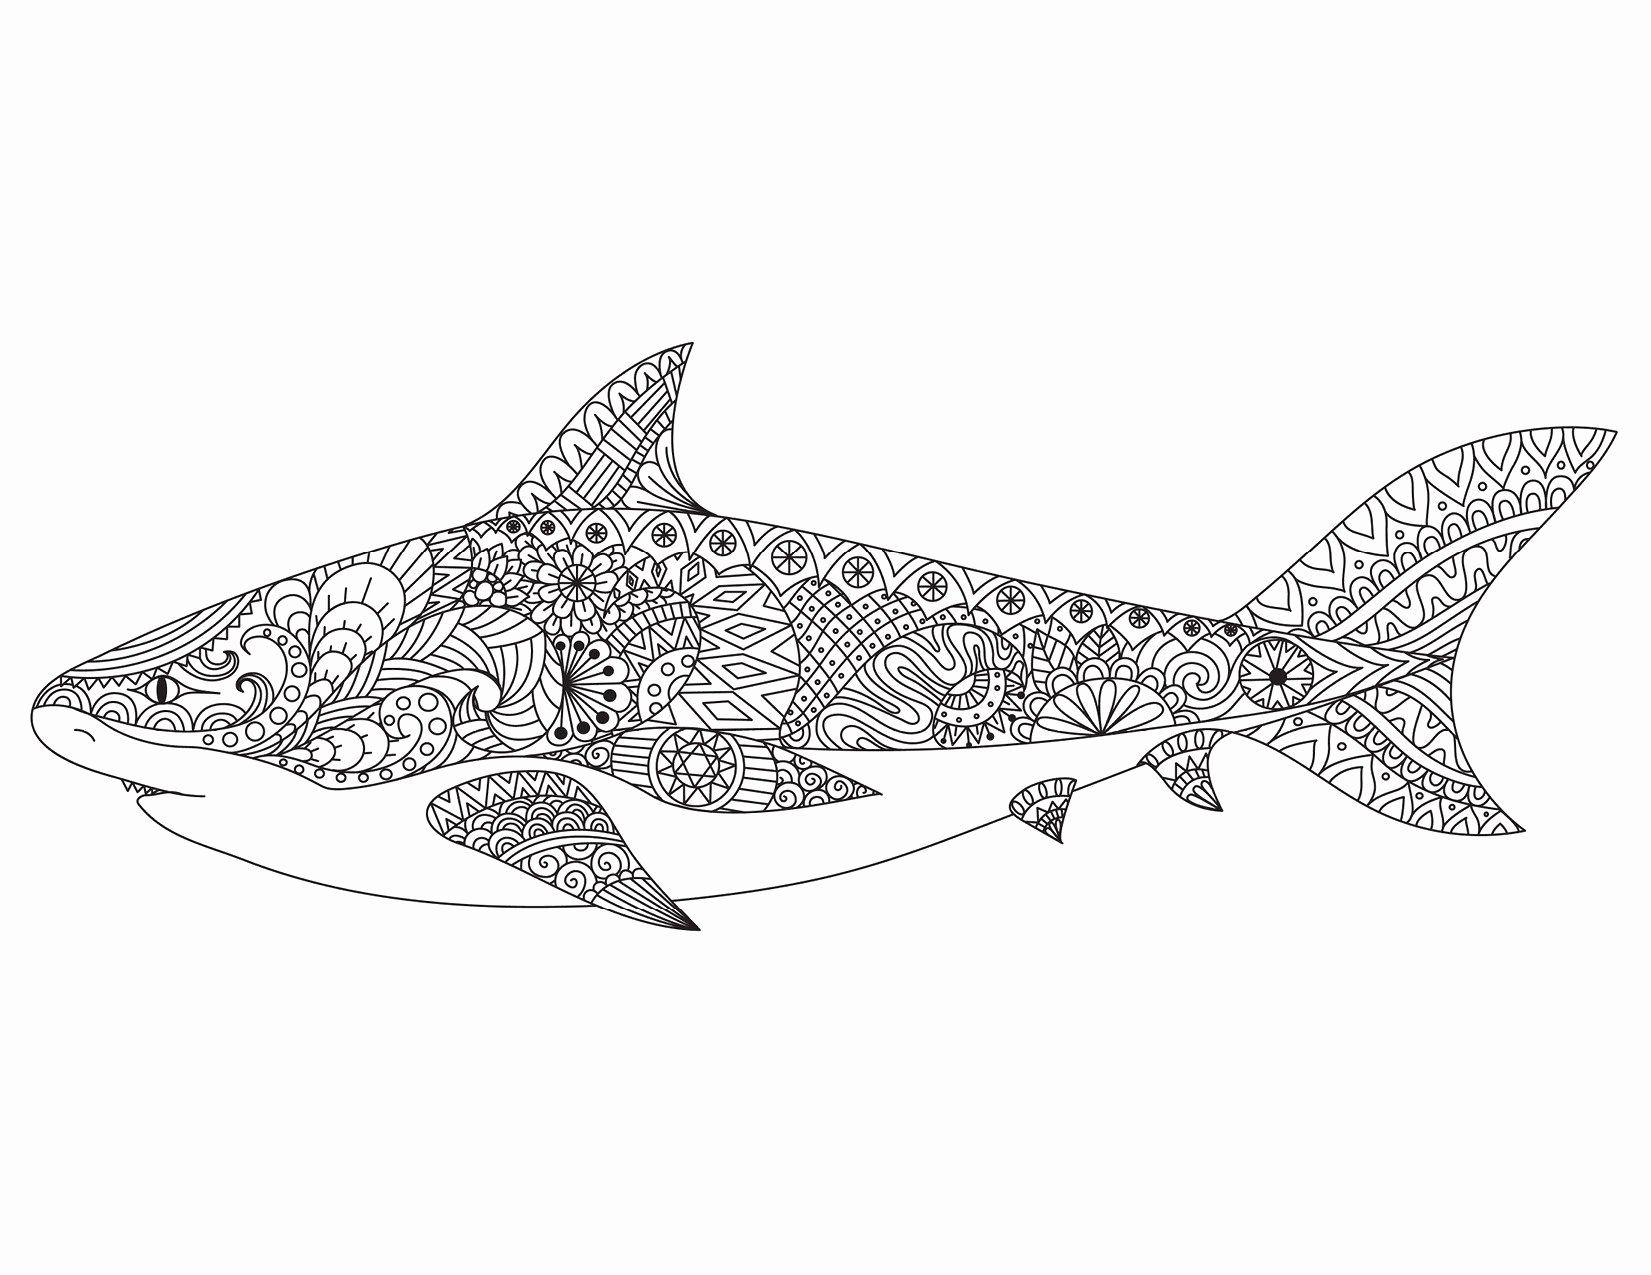 Shark Coloring Pages For Adults Awesome Coloriage In 2020 Shark Coloring Pages Designs Coloring Books Coloring Books